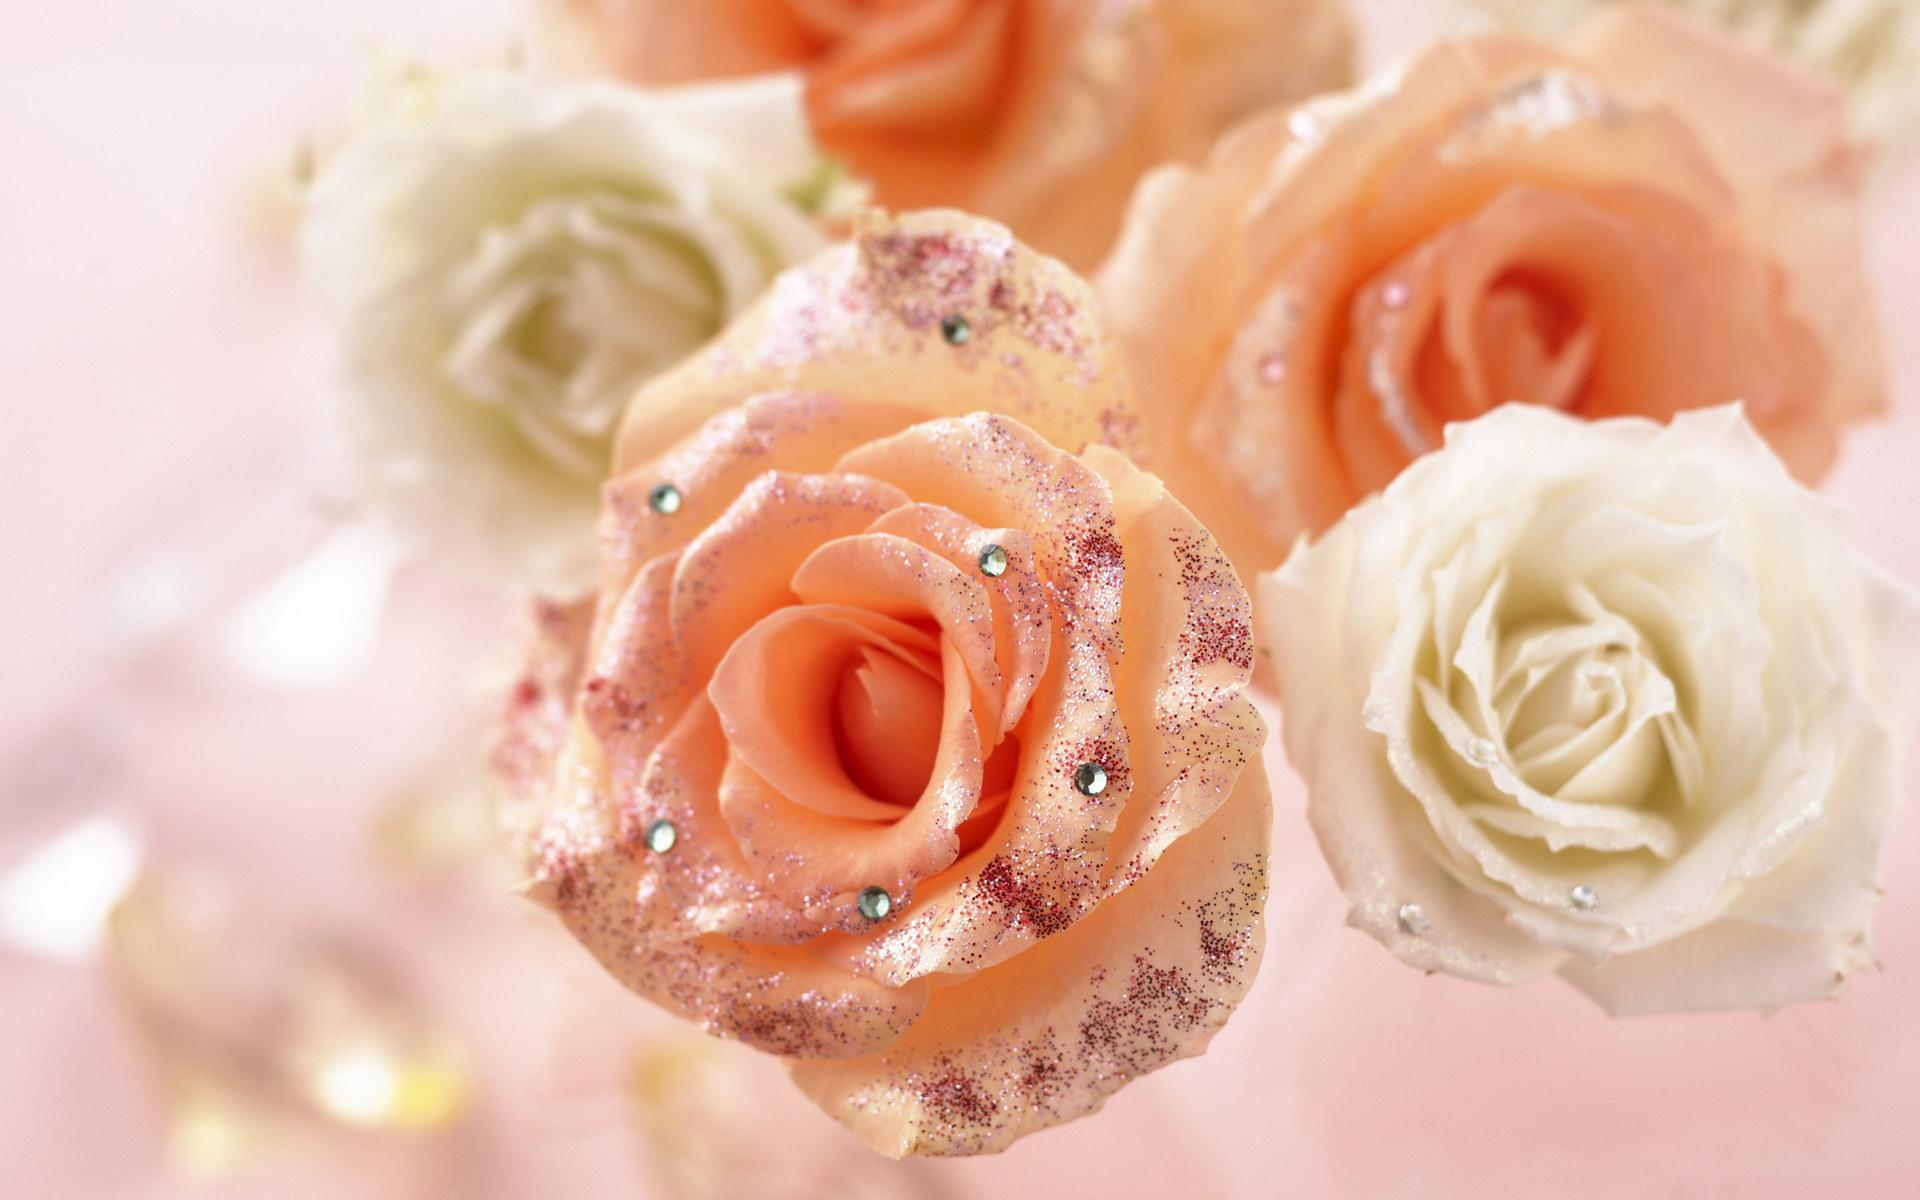 Romantic Roses - Roses Wallpaper (13966426) - Fanpop